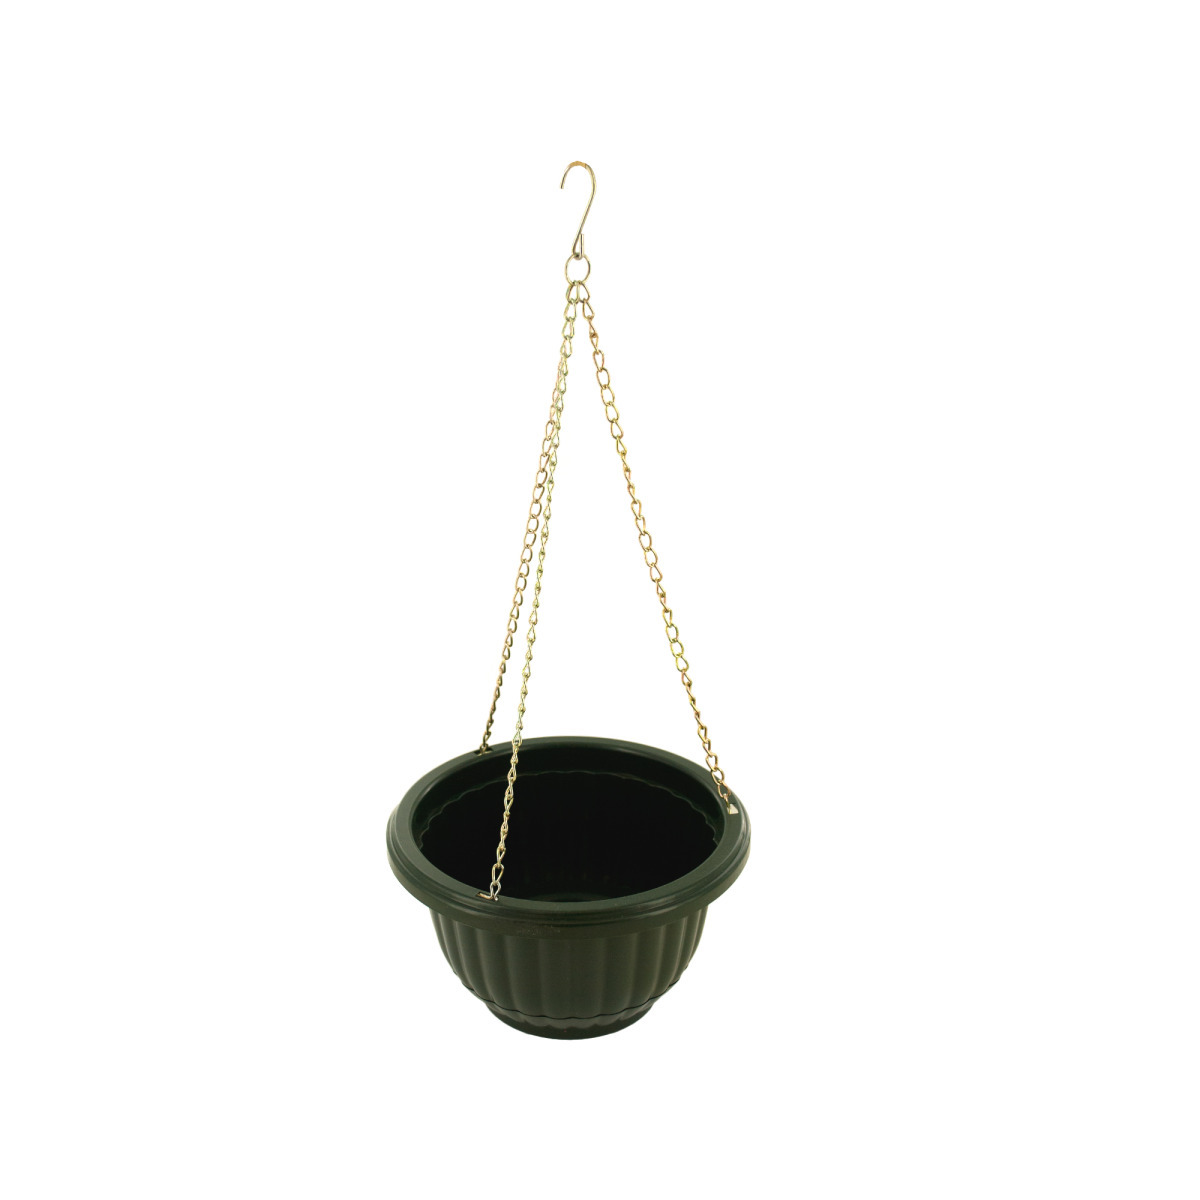 Mini Plant Pots Bulk Wholesale Small Hanging Flower Pot With Metal Link Chain